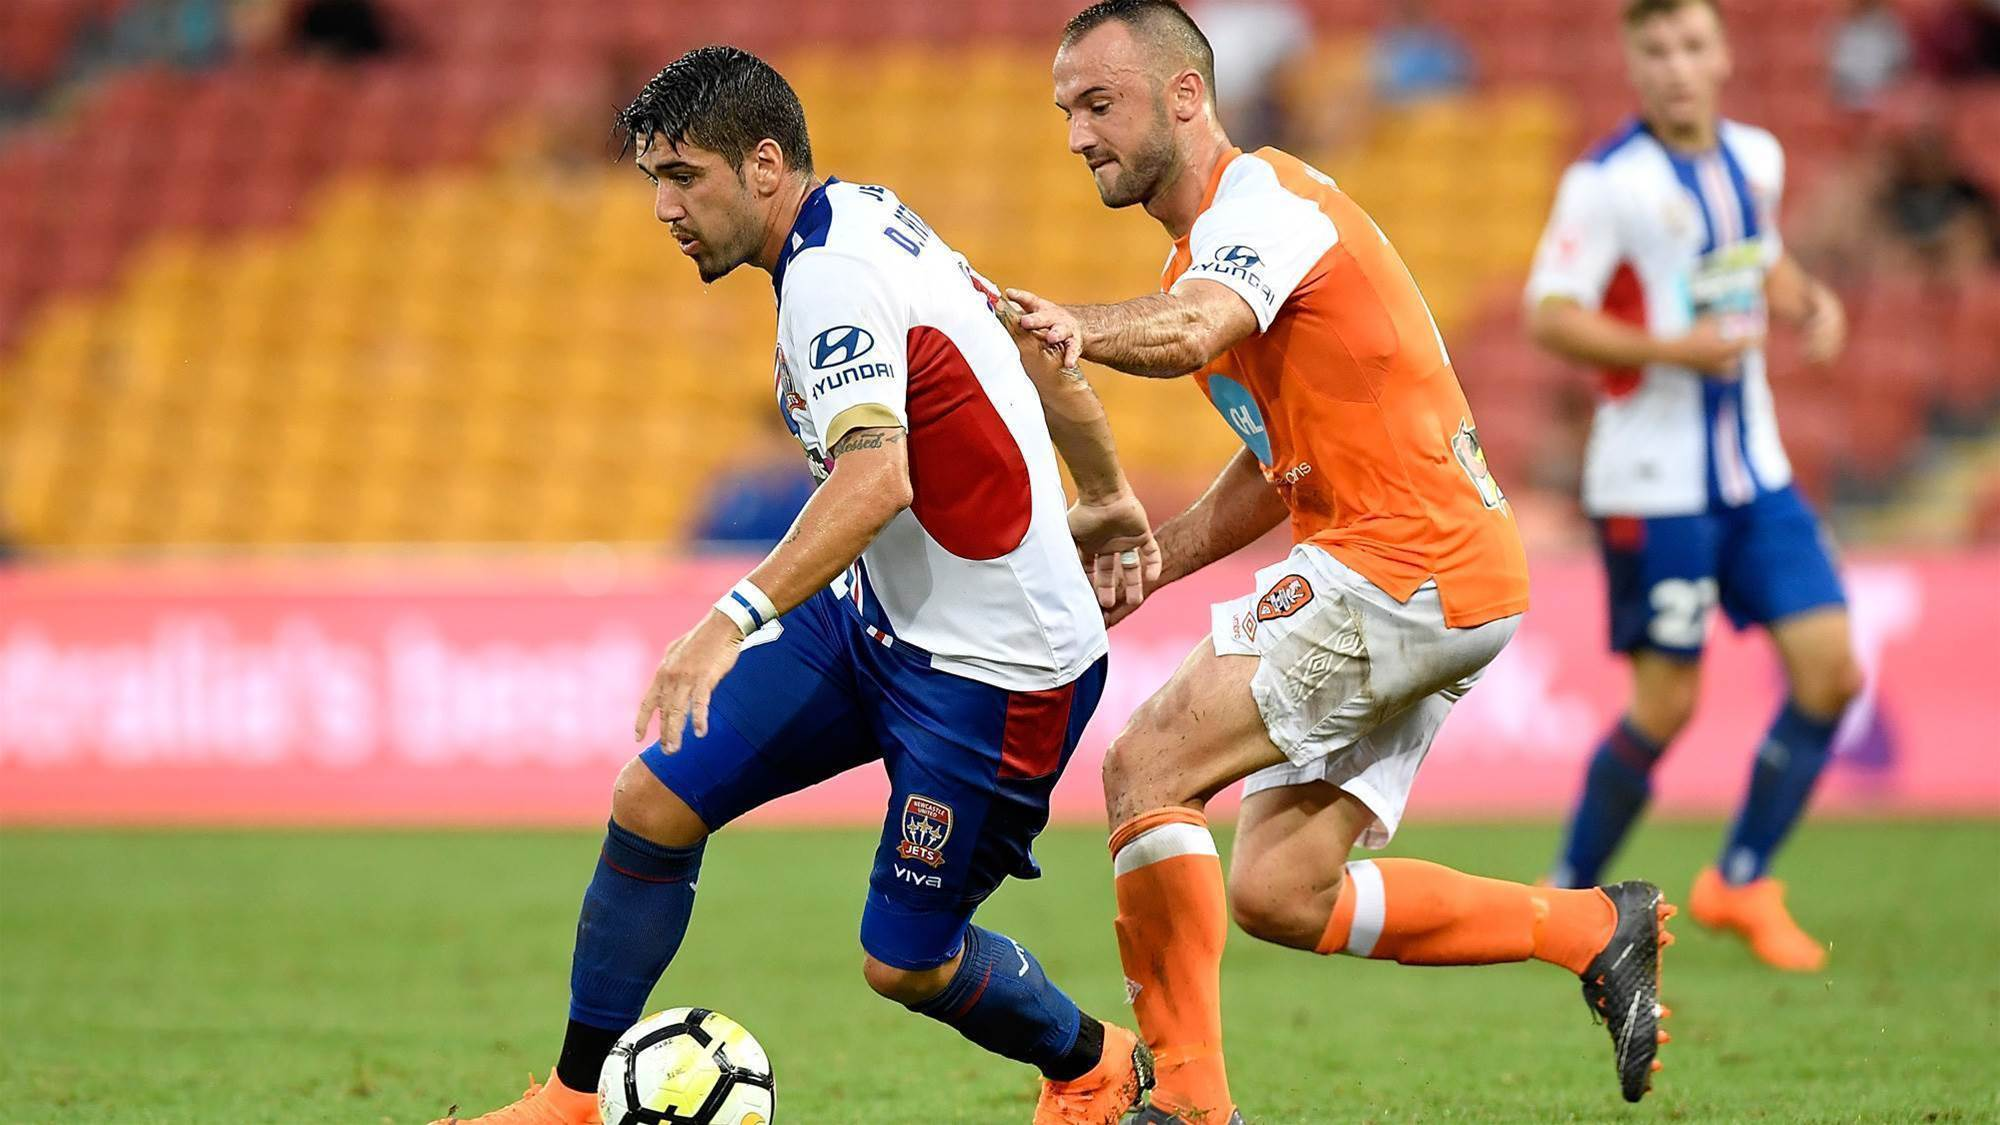 Brisbane Roar vs Newcastle Jets player ratings